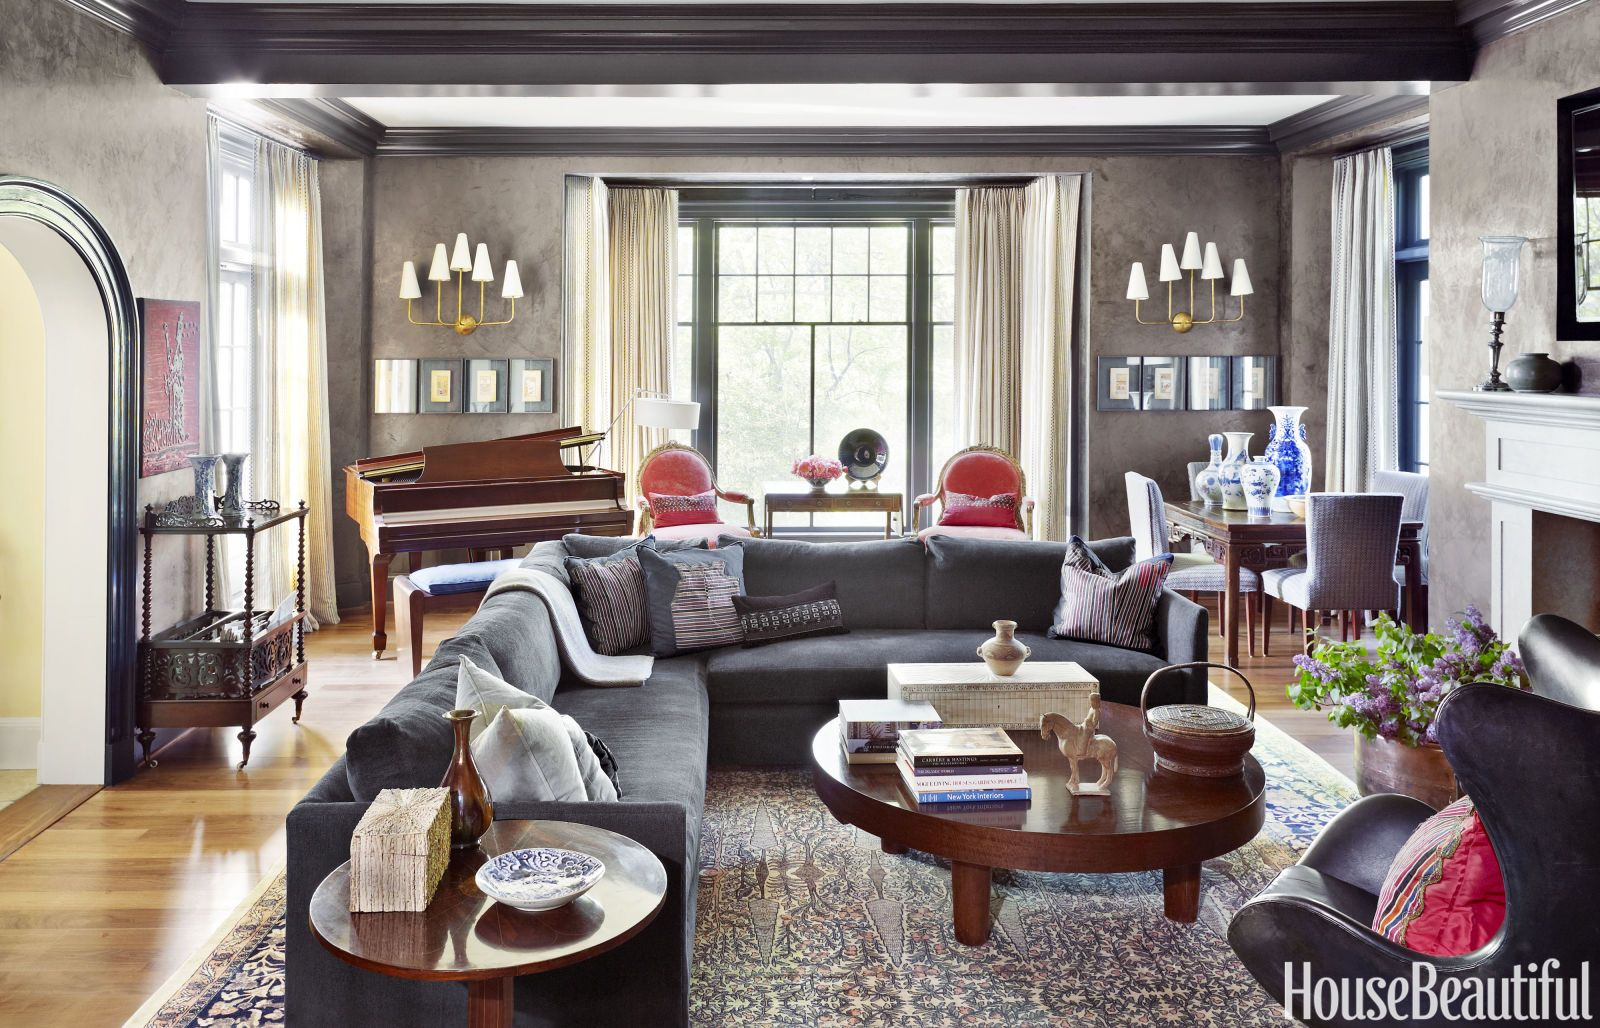 10 Stylish Gray Living Room Ideas Decorating Living Rooms With Gray